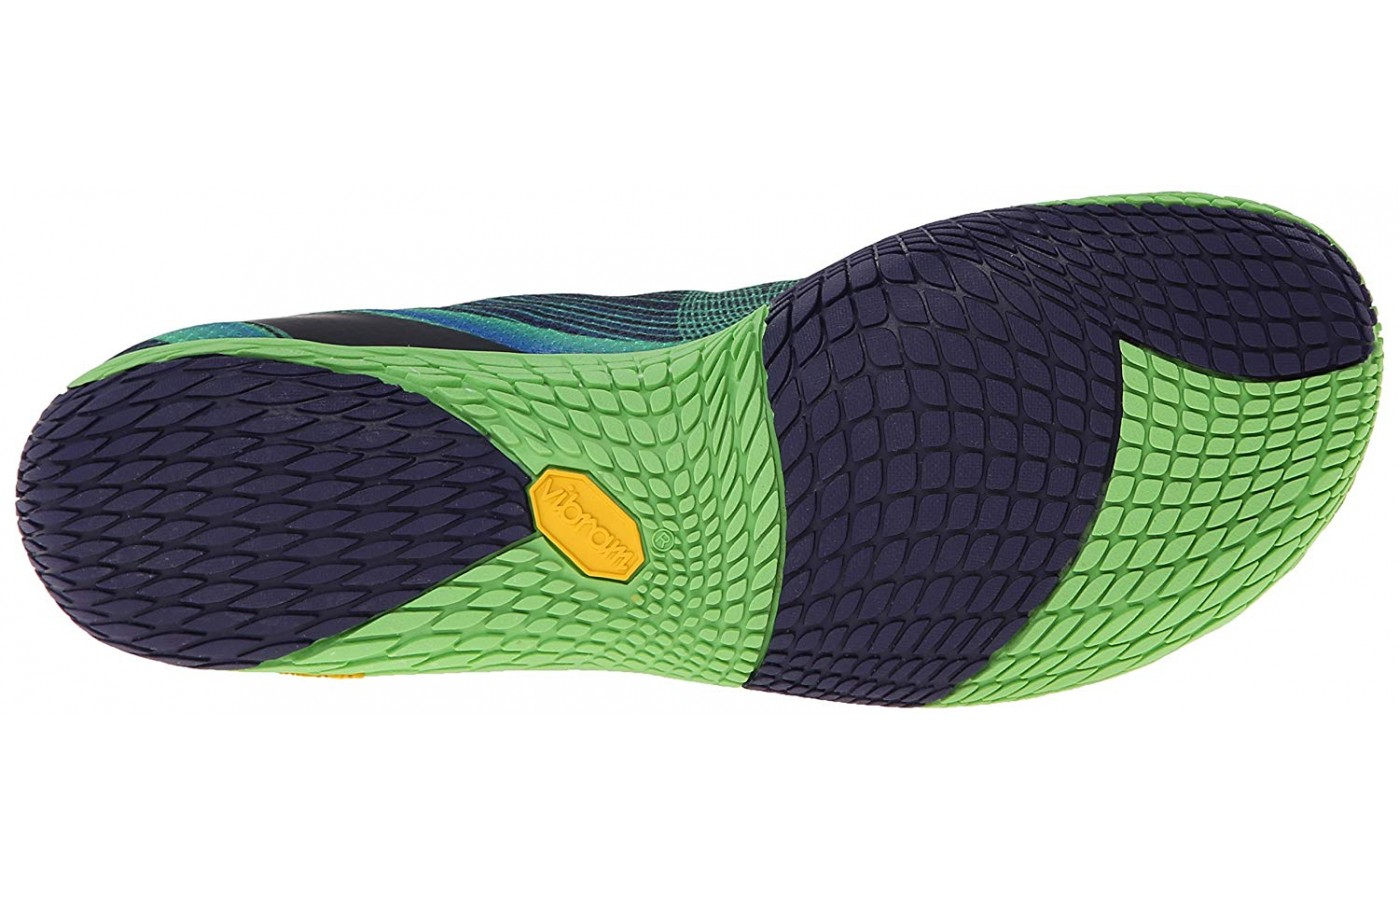 Light groove patterns on the outsoles are flexible.